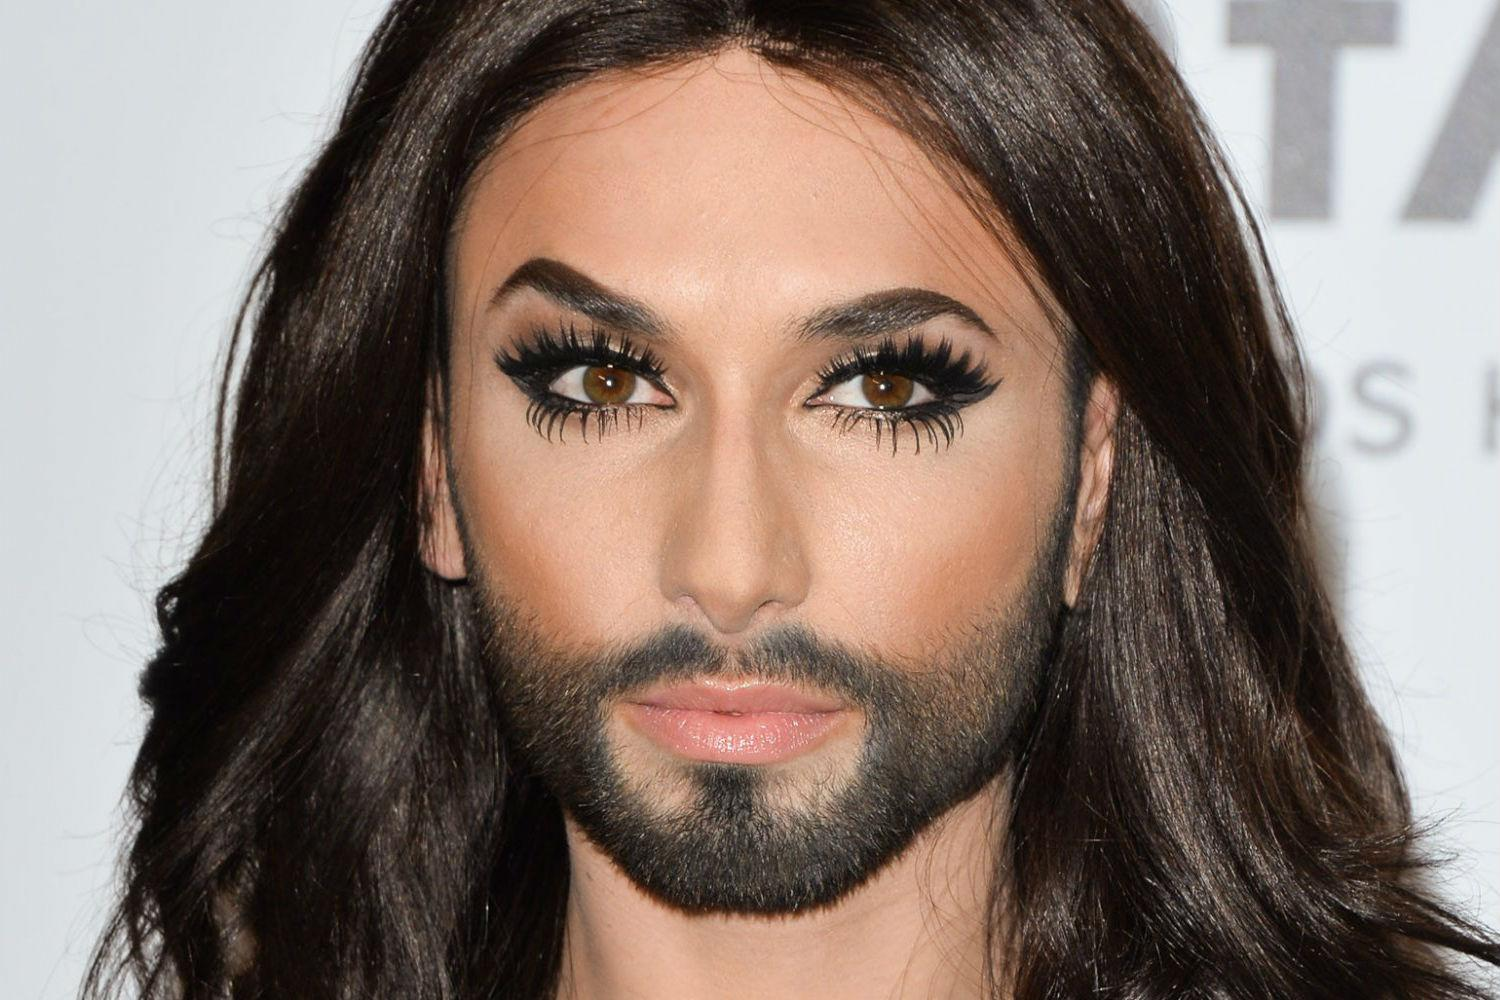 Hilarious Chrome Extension Adds A Conchita Wurst Beard To